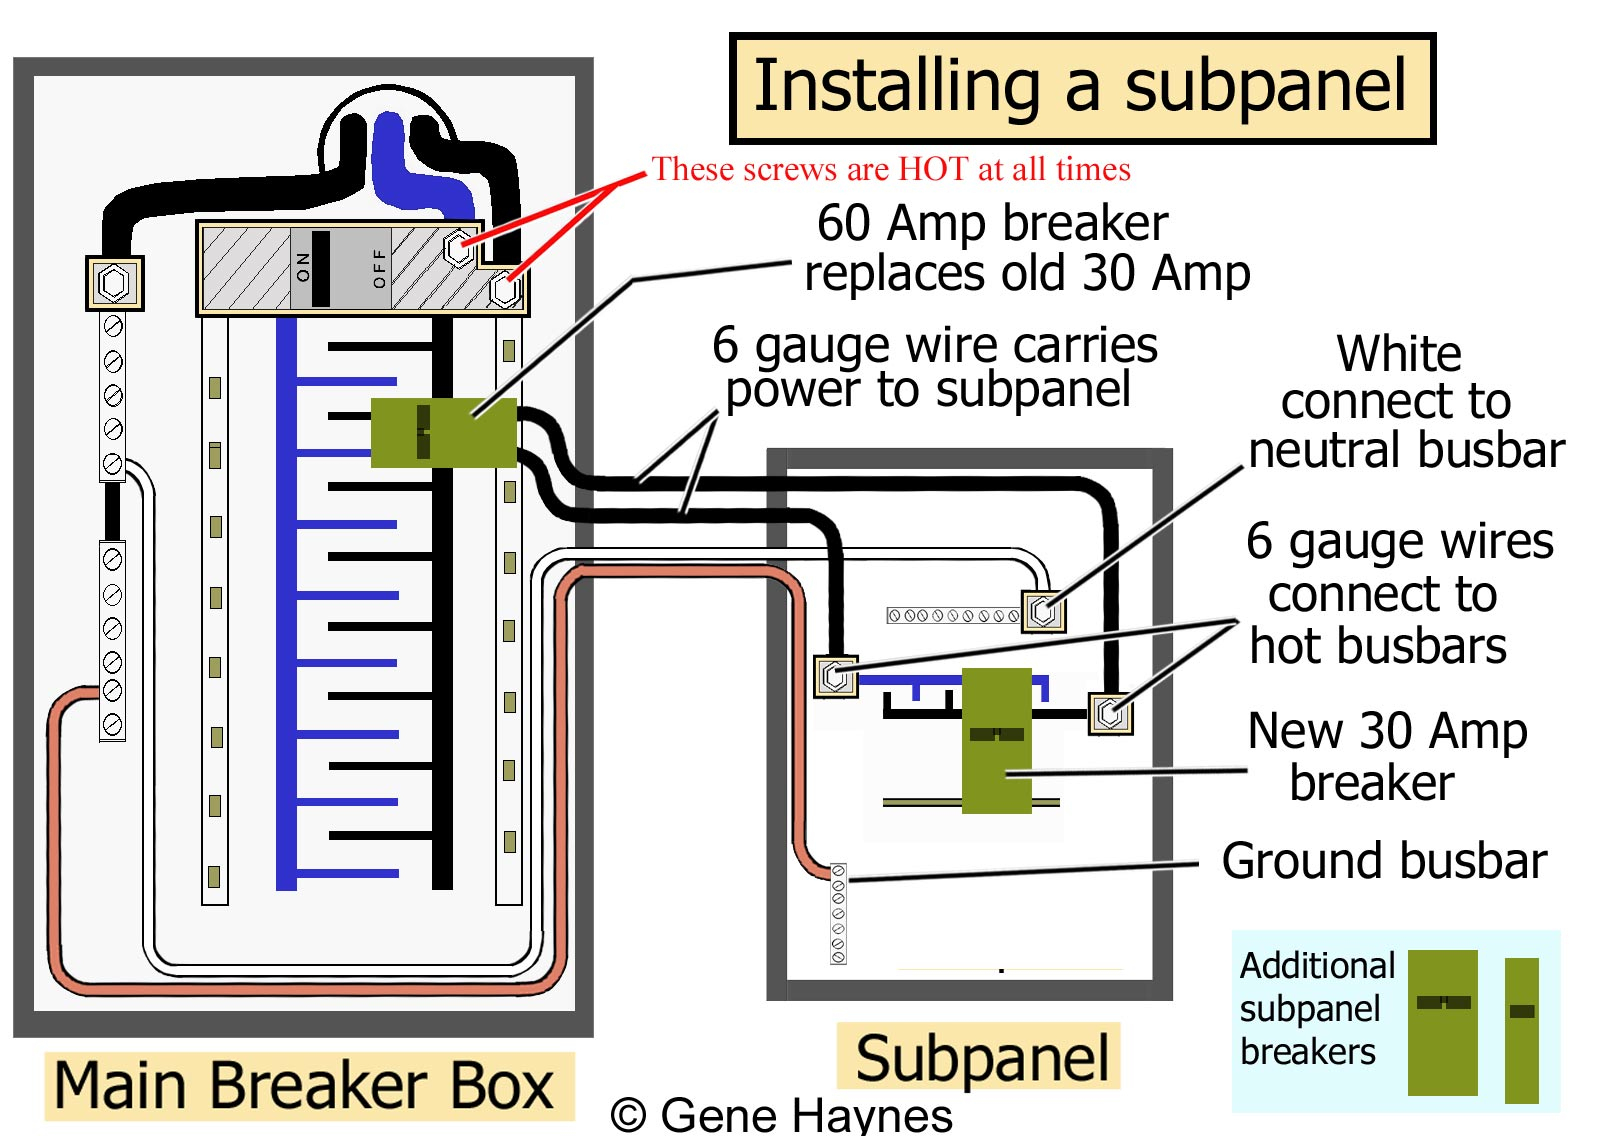 Wiring A Sub Panel - Today Wiring Diagram - 125 Amp Sub Panel Wiring Diagram